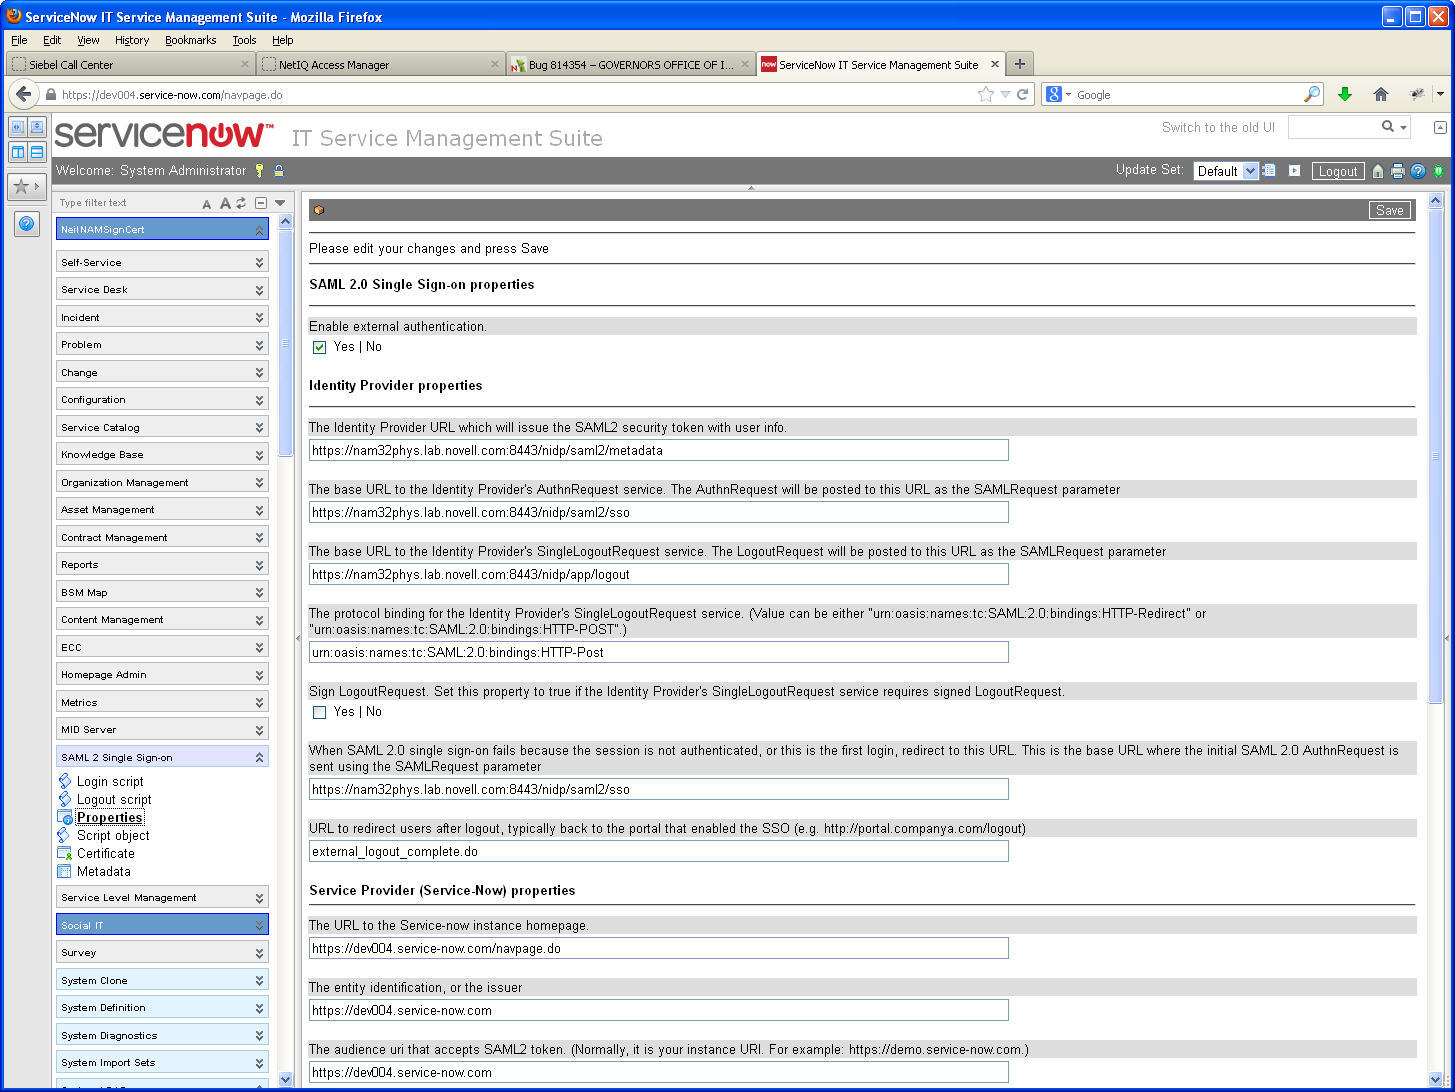 How to Integrate NetIQ Access Manager with ServiceNow IT